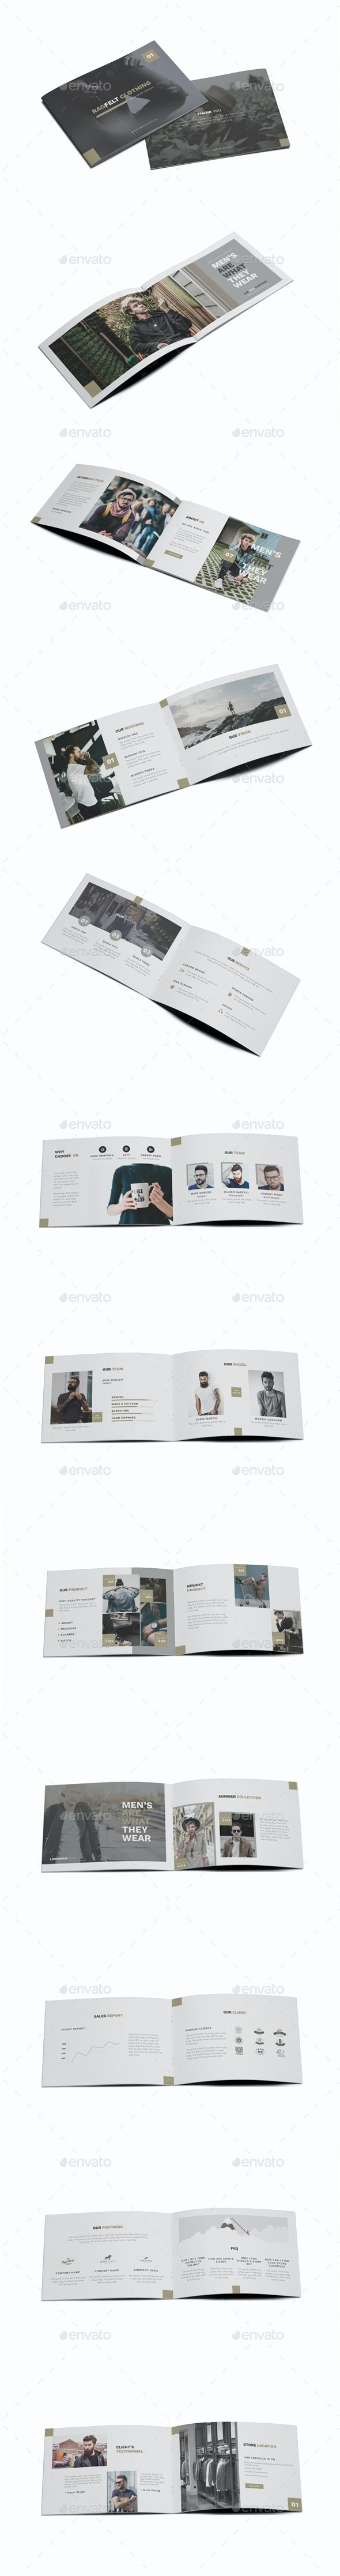 Man Fashion A5 Brochure Template - Brochures Print Templates